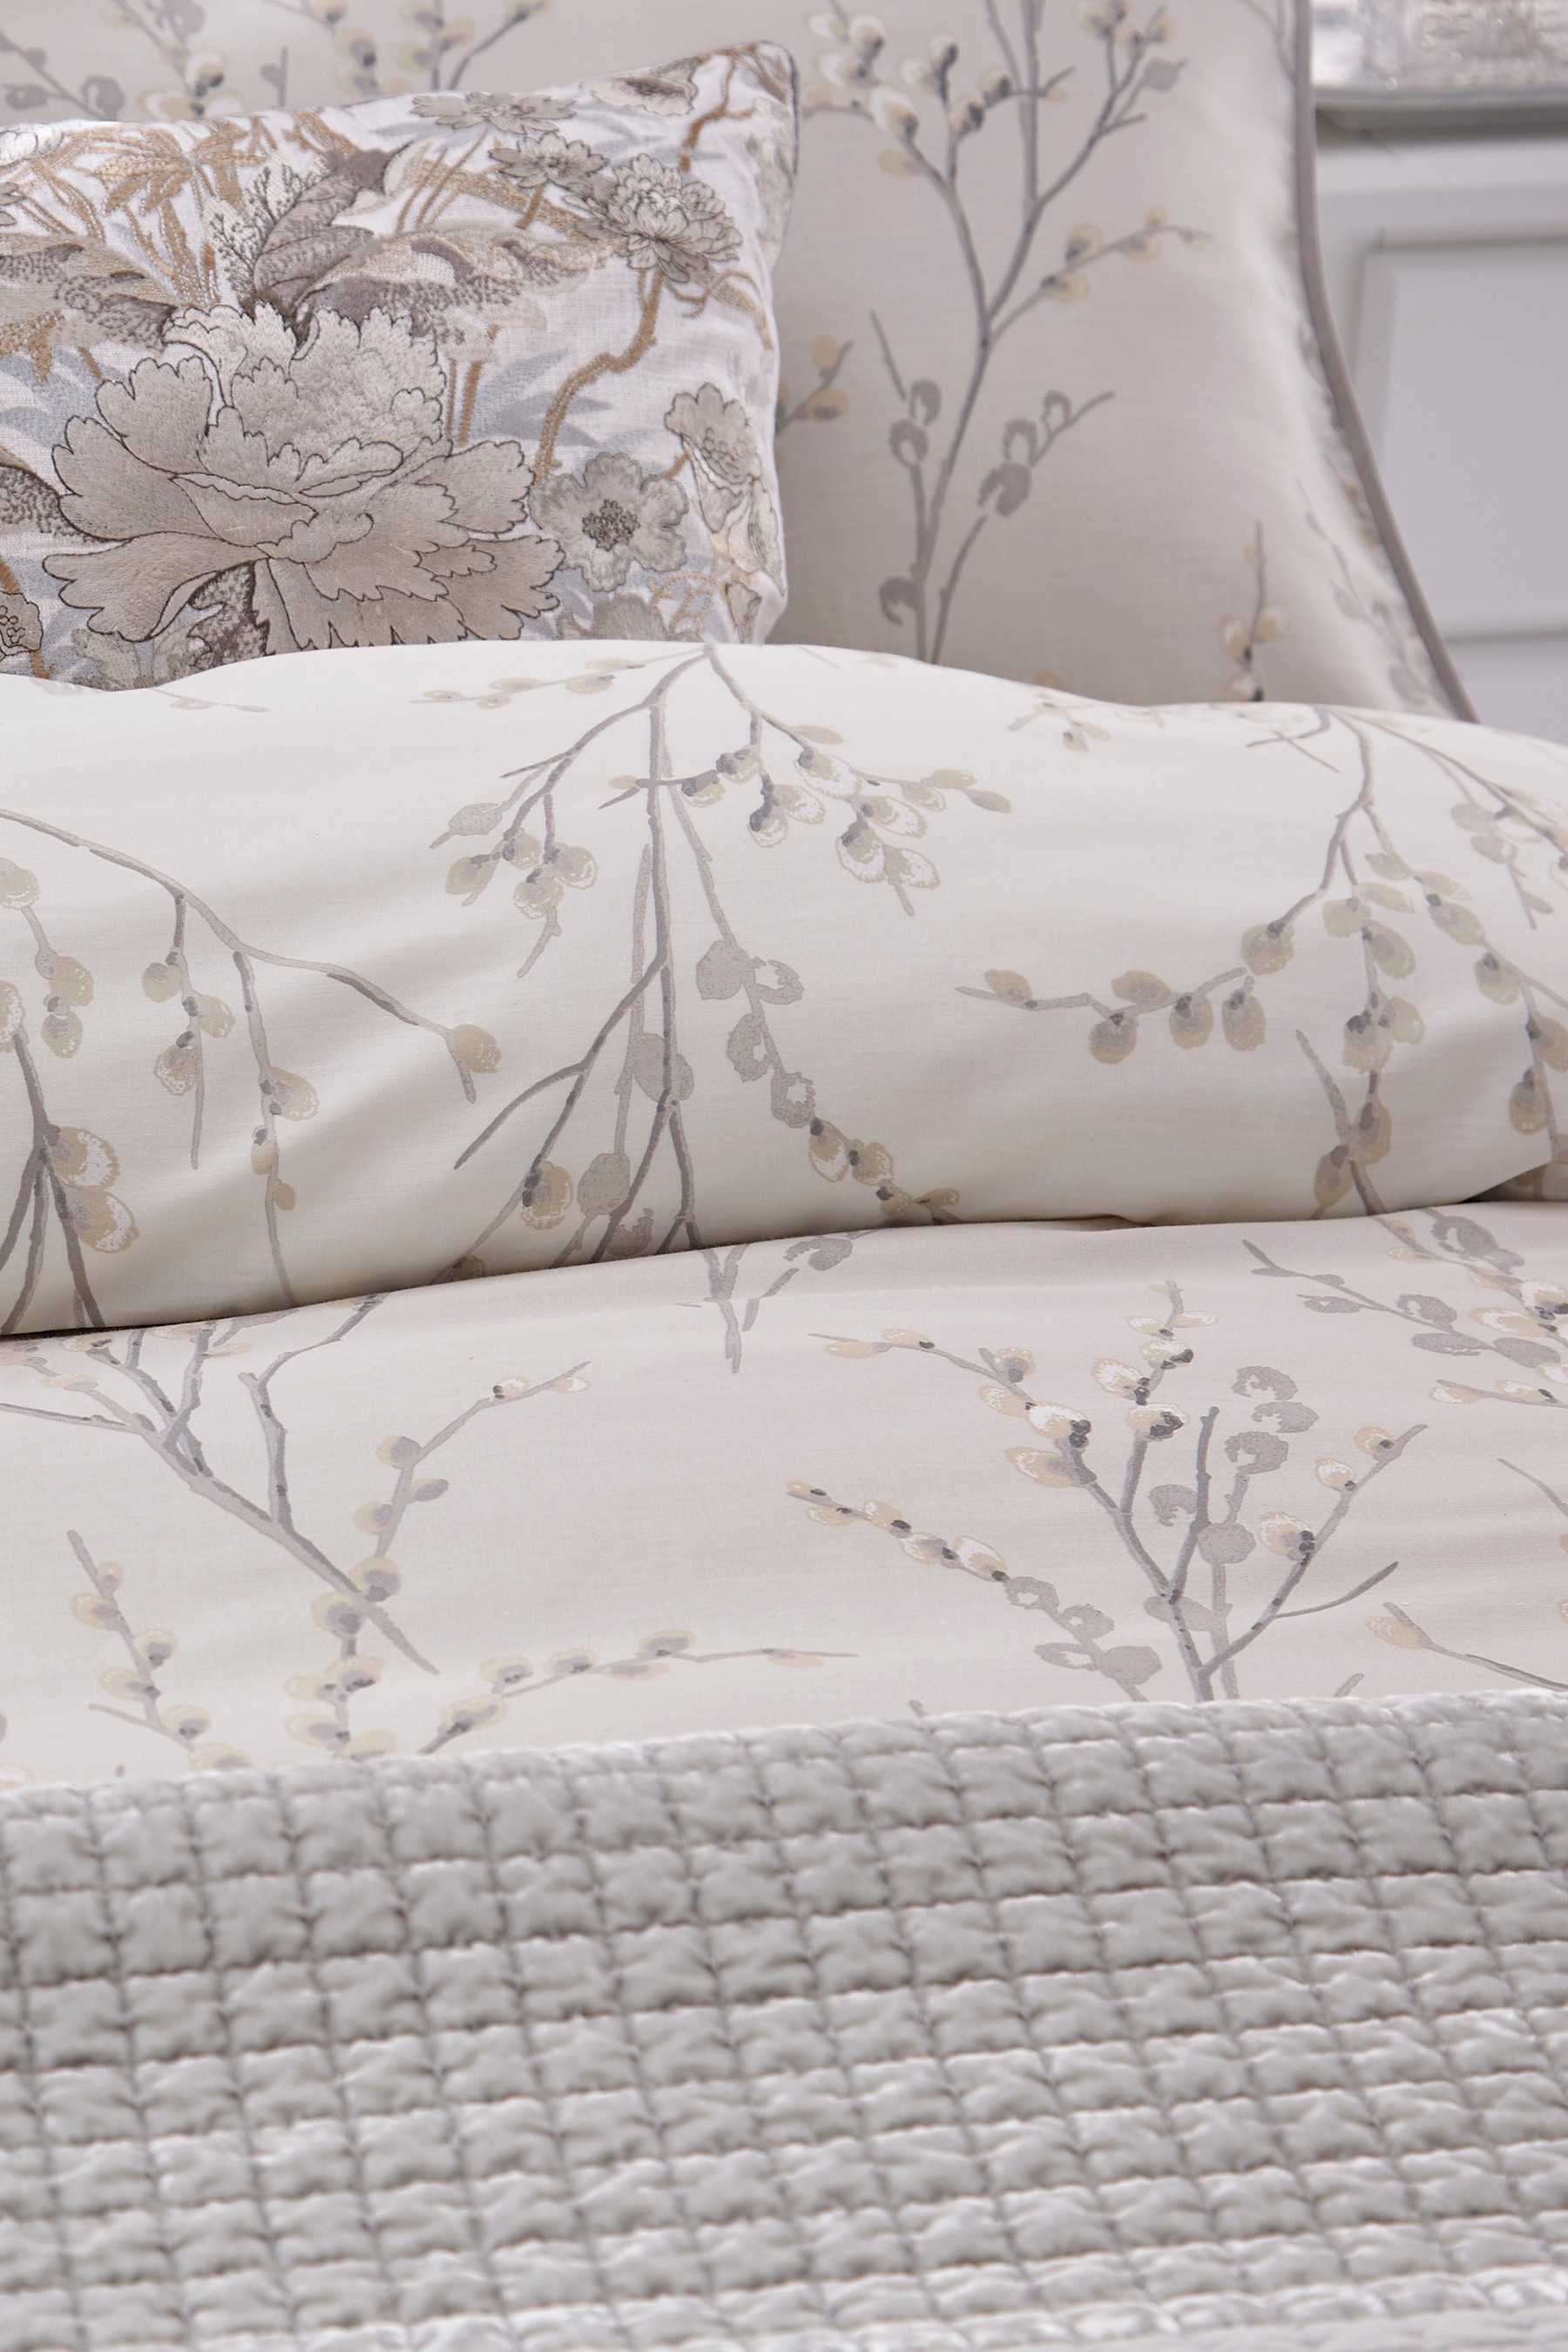 Buy Laura Ashley Pussy Willow Duvet Cover and Pillowcase